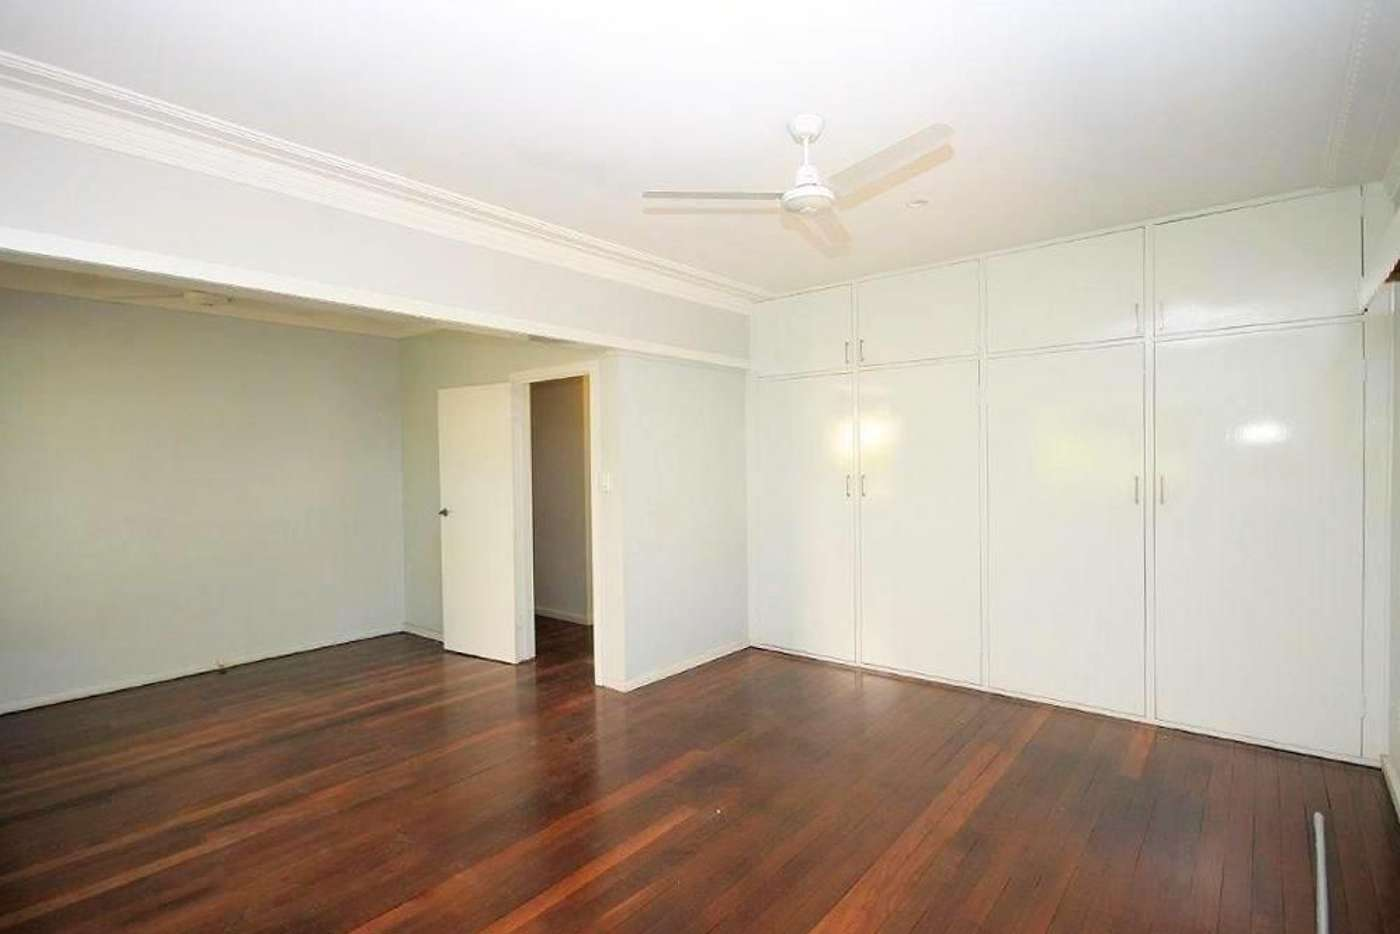 Seventh view of Homely house listing, 37 Ninth Avenue, St Lucia QLD 4067